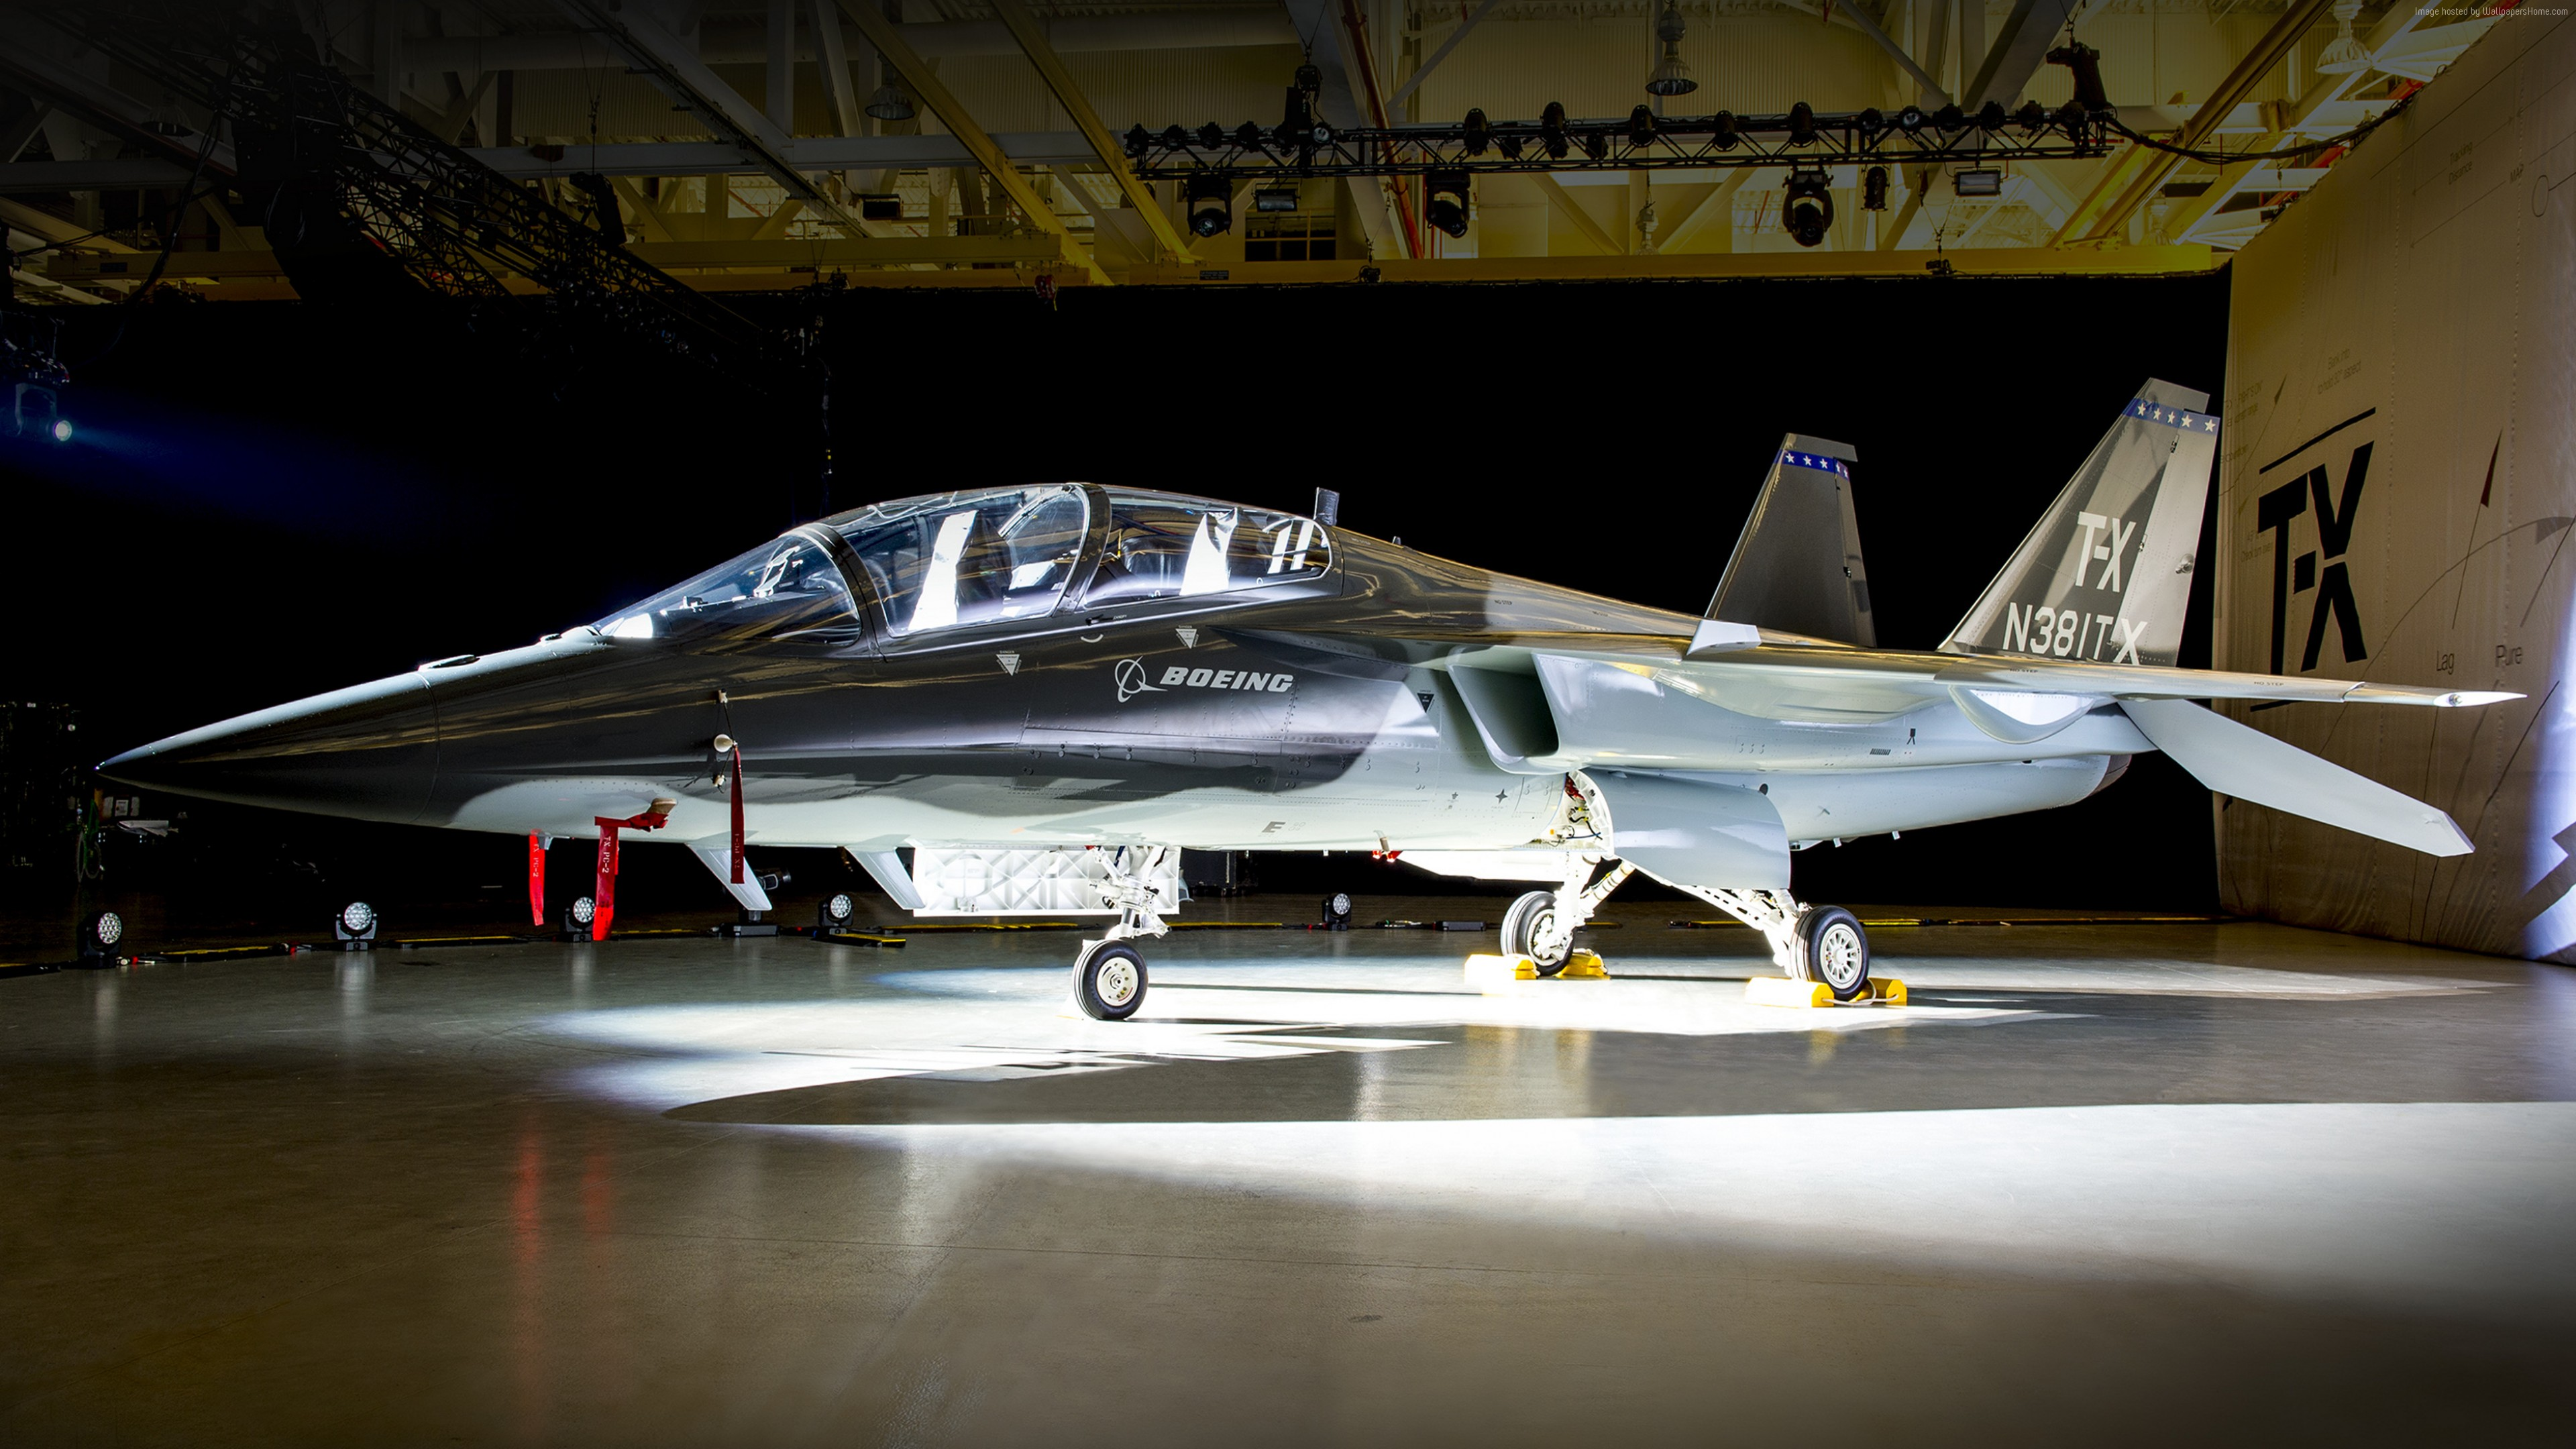 Wallpaper Boeing TX, fighter aircraft, U.S. Airforce, Military